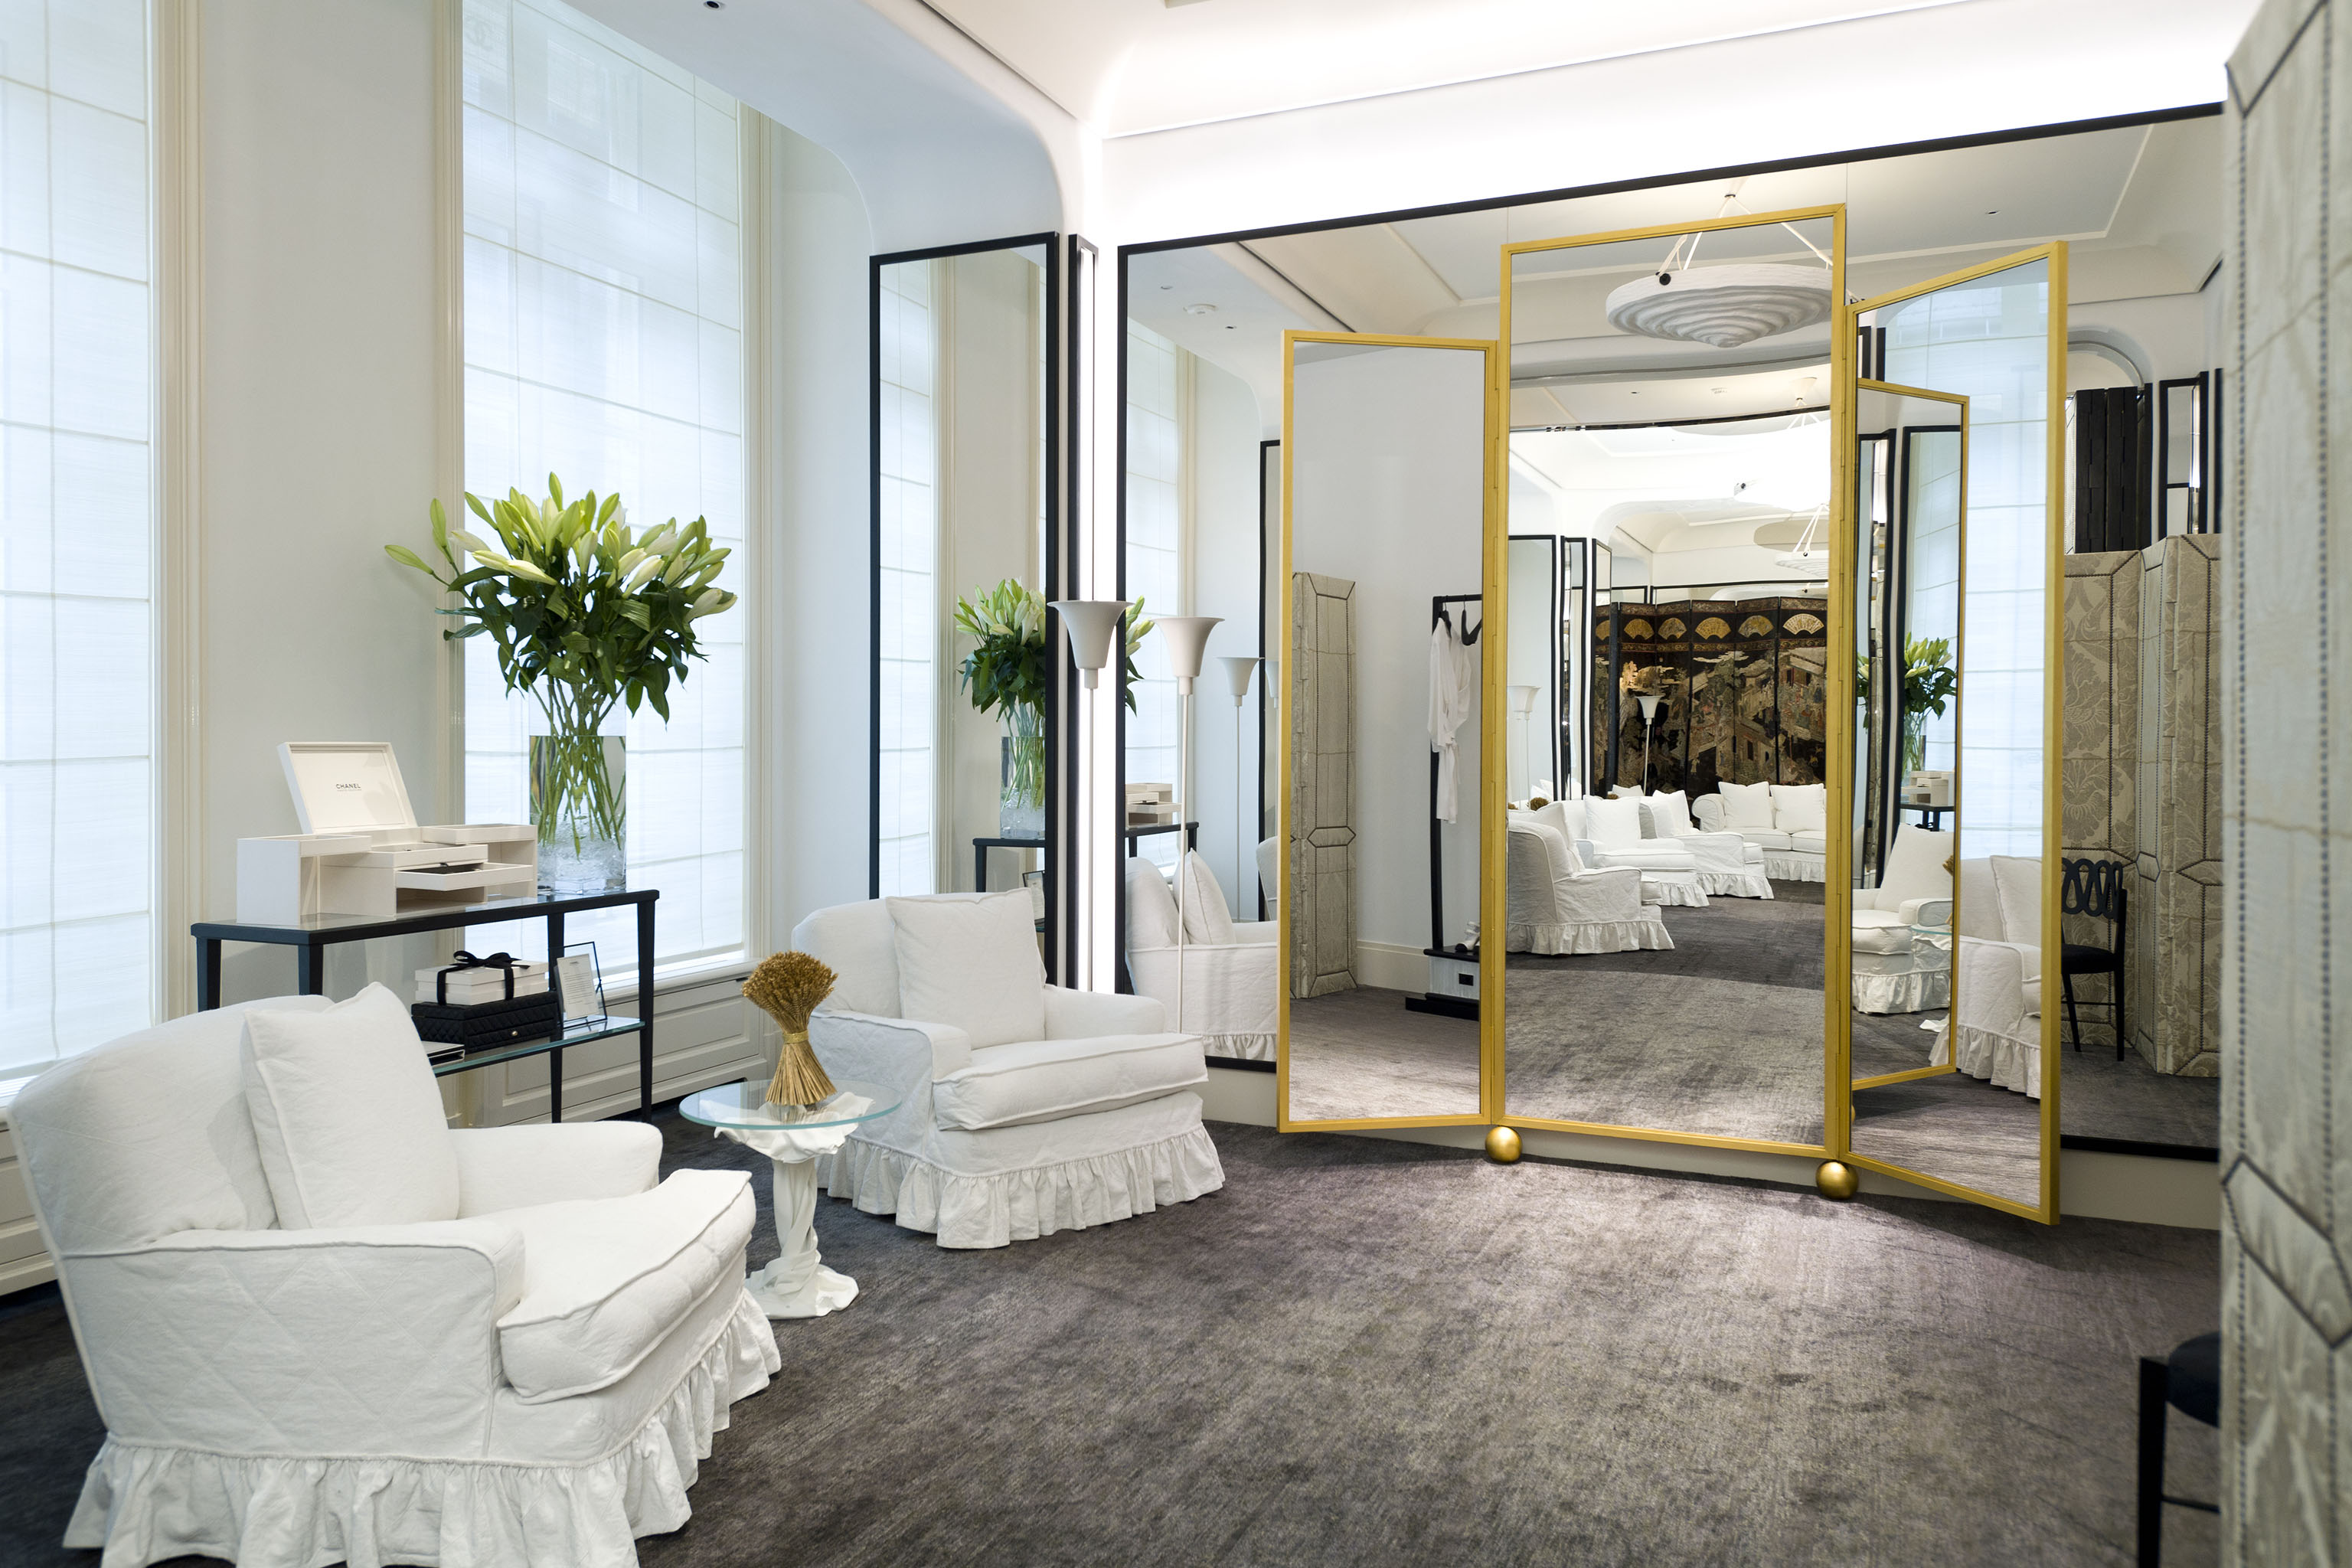 A private fitting room at Chanel's renovated haute couture salon in Paris.